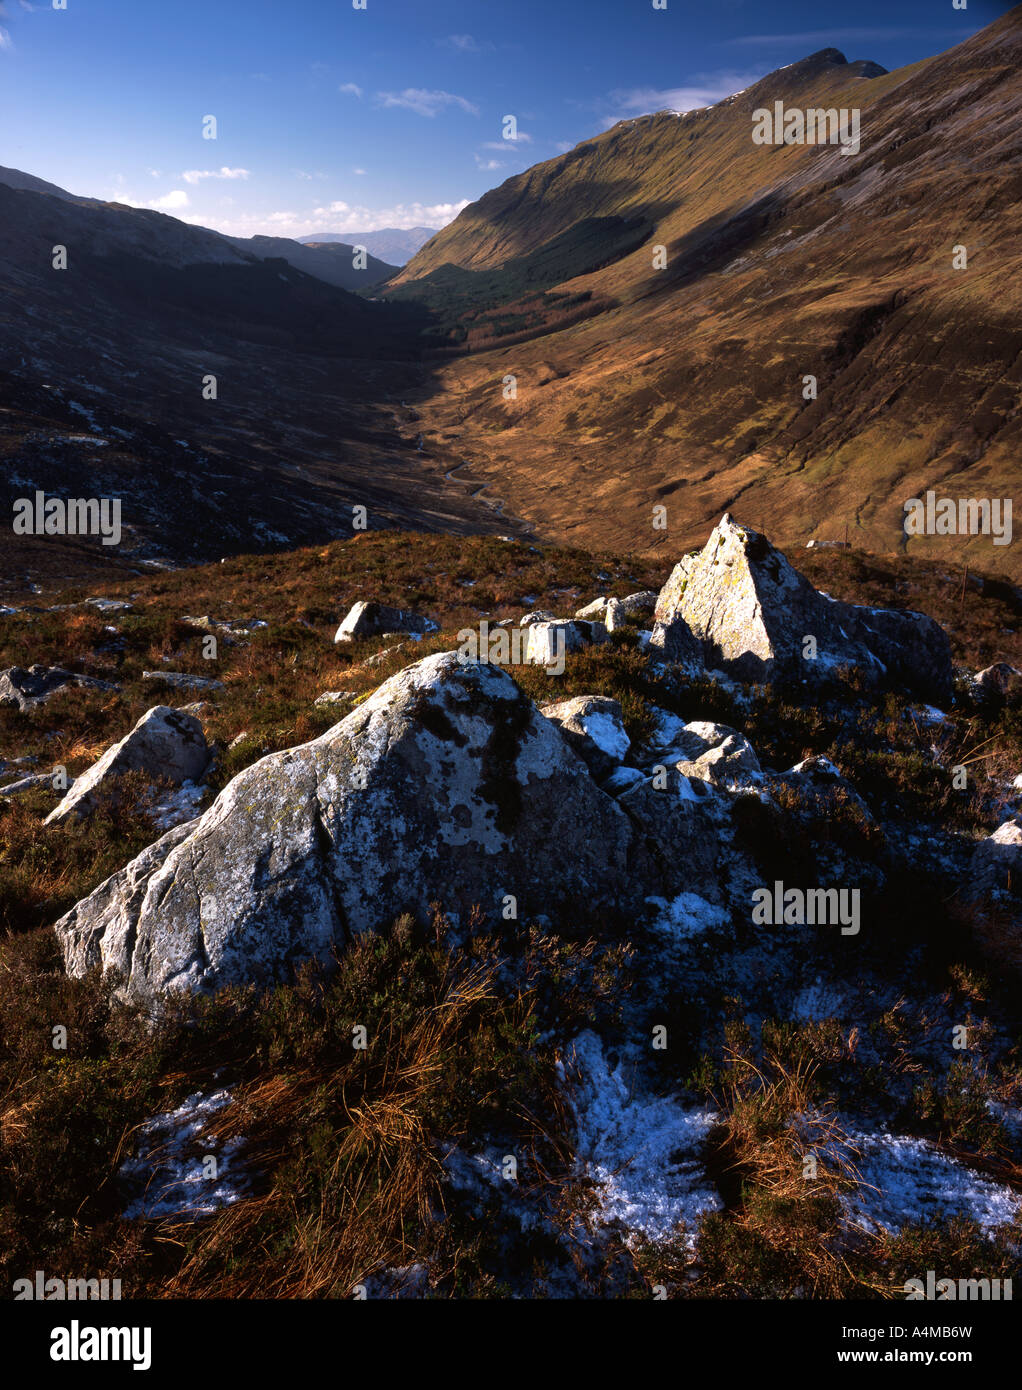 Glen Duror viewed from the summit ridge of Sgorr a Choise - Stock Image